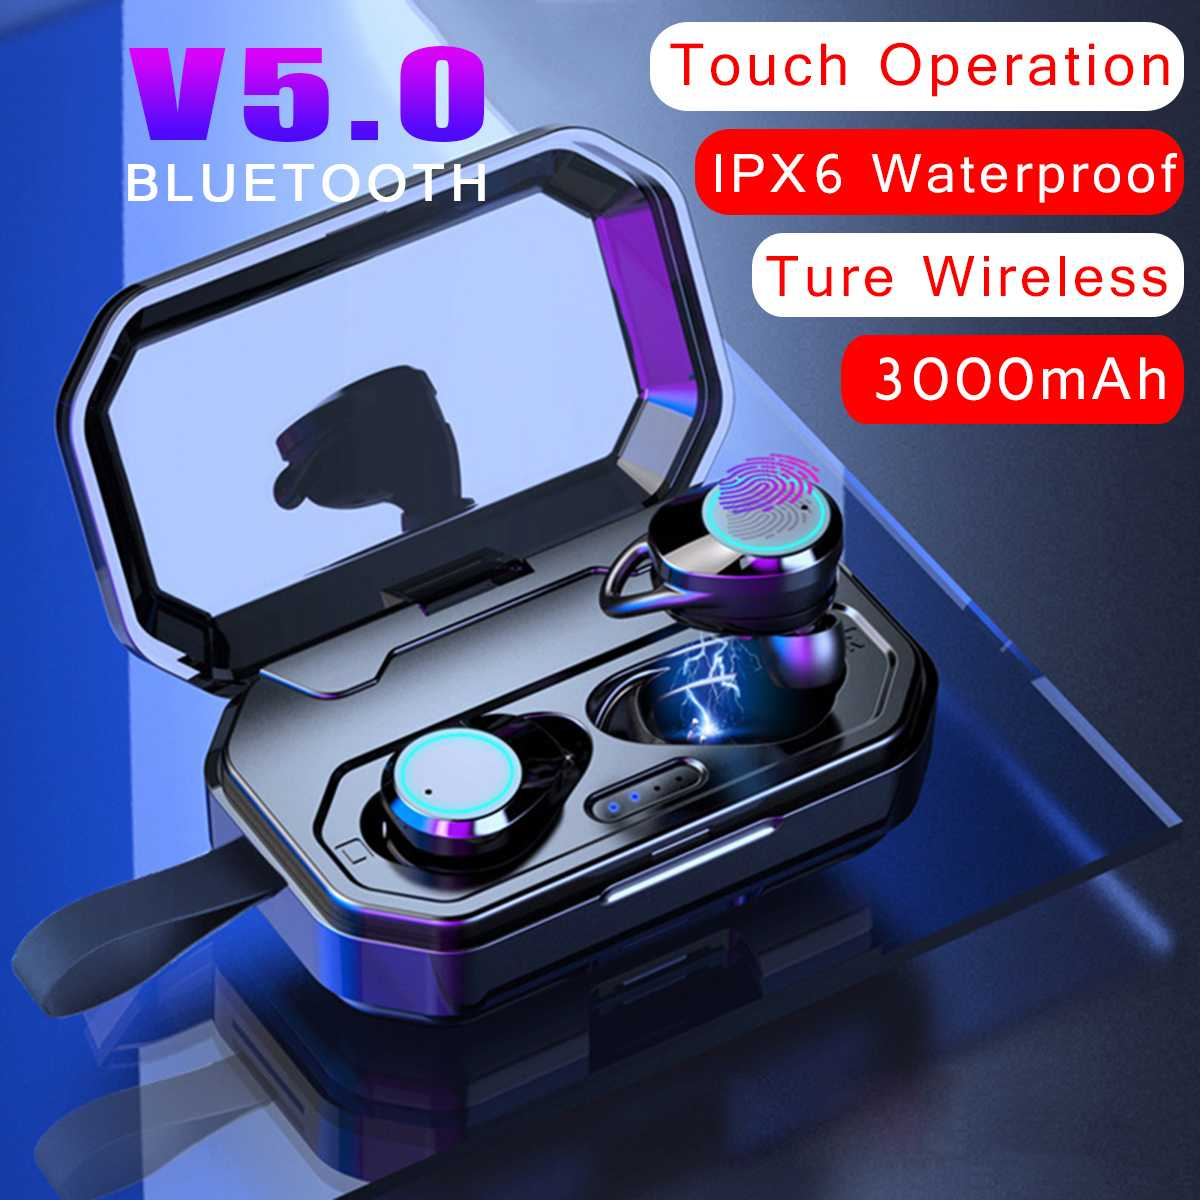 Active Bluetooth V5.0 Tws Wireless Earphone Touchs Control Cvc8.0 Noise Cancellings Earbuds 3000mah Charging Box Power Bank For Iphone To Ensure A Like-New Appearance Indefinably